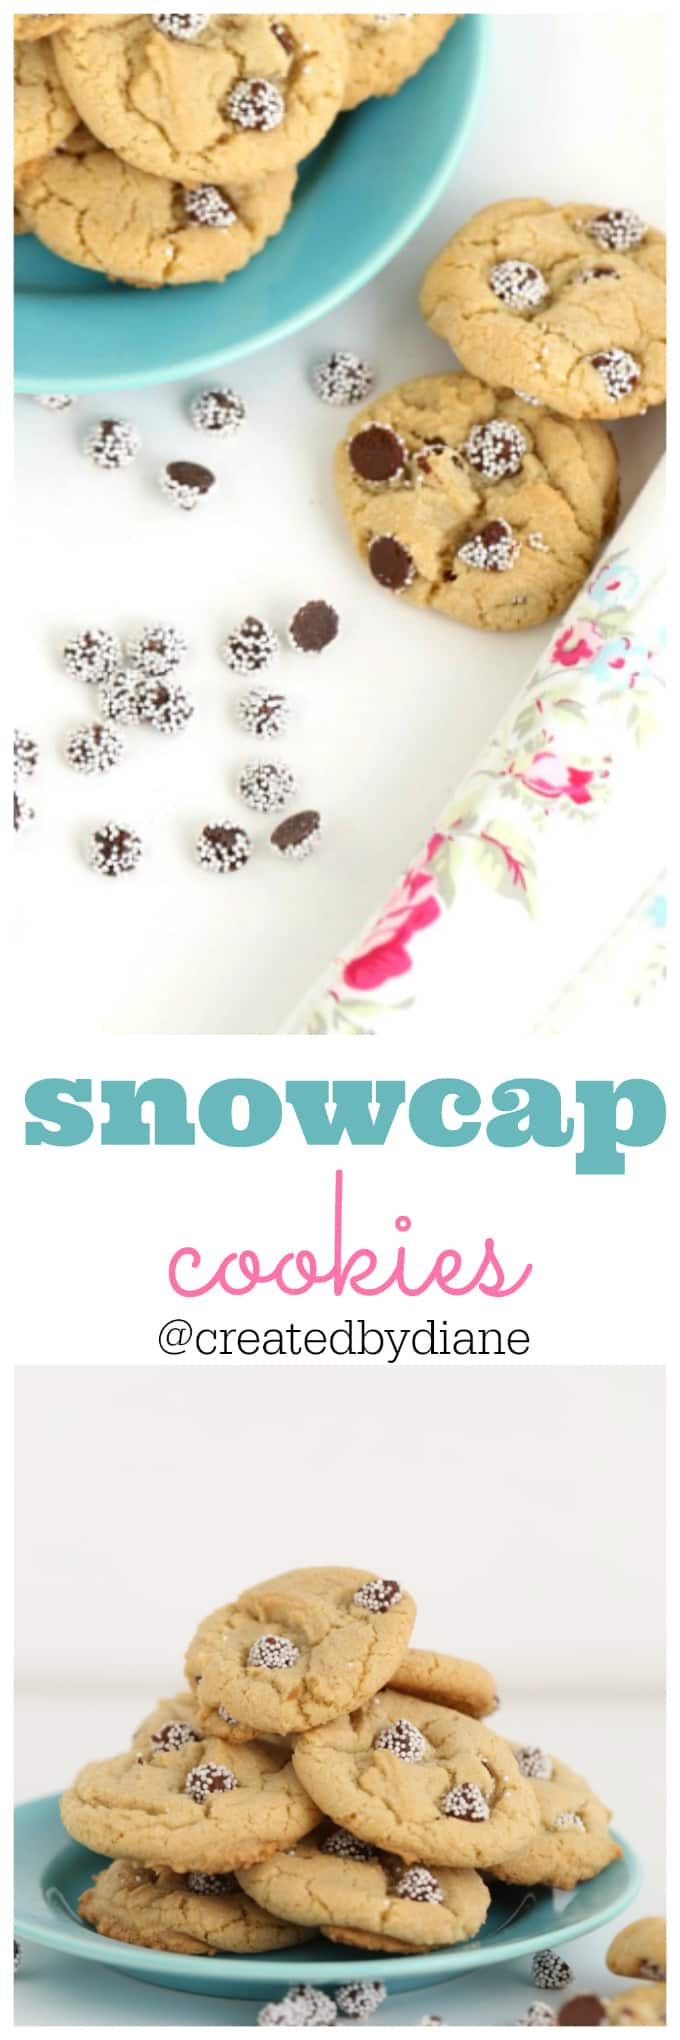 snowcap cookie recipe